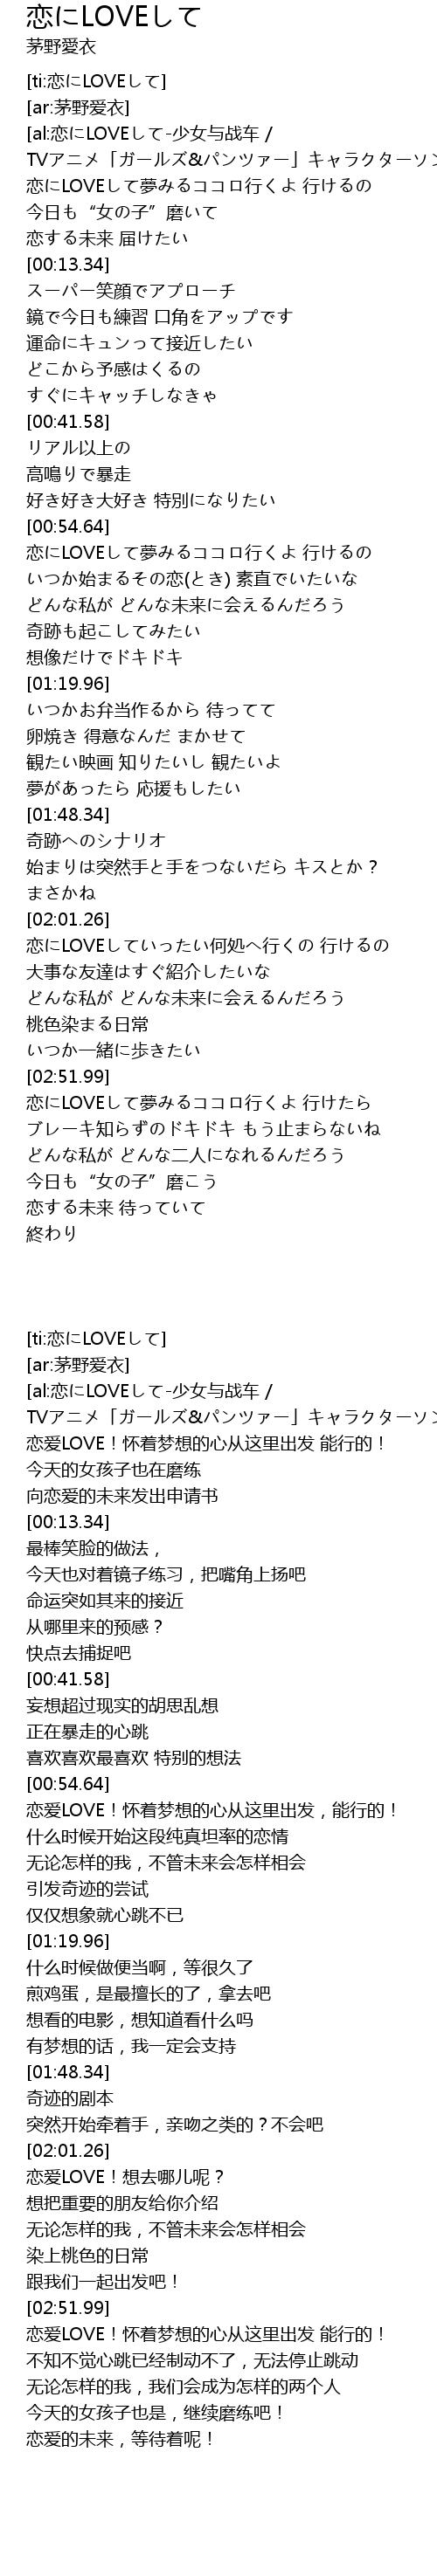 恋にLOVEして lian LOVE Lyrics